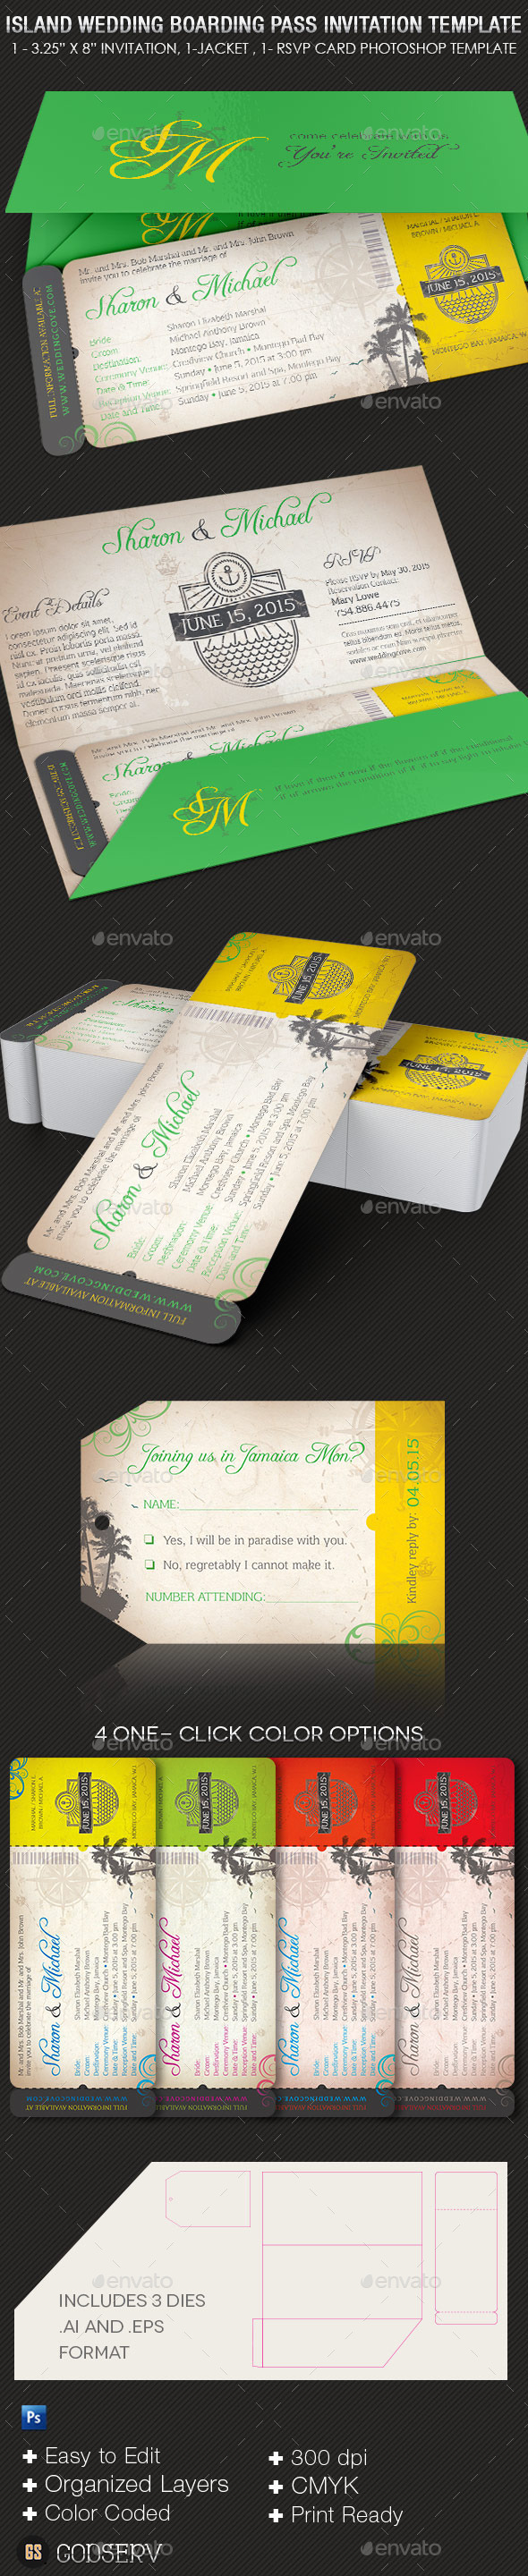 Island Wedding Boarding Pass Invitation Template - Weddings Cards & Invites